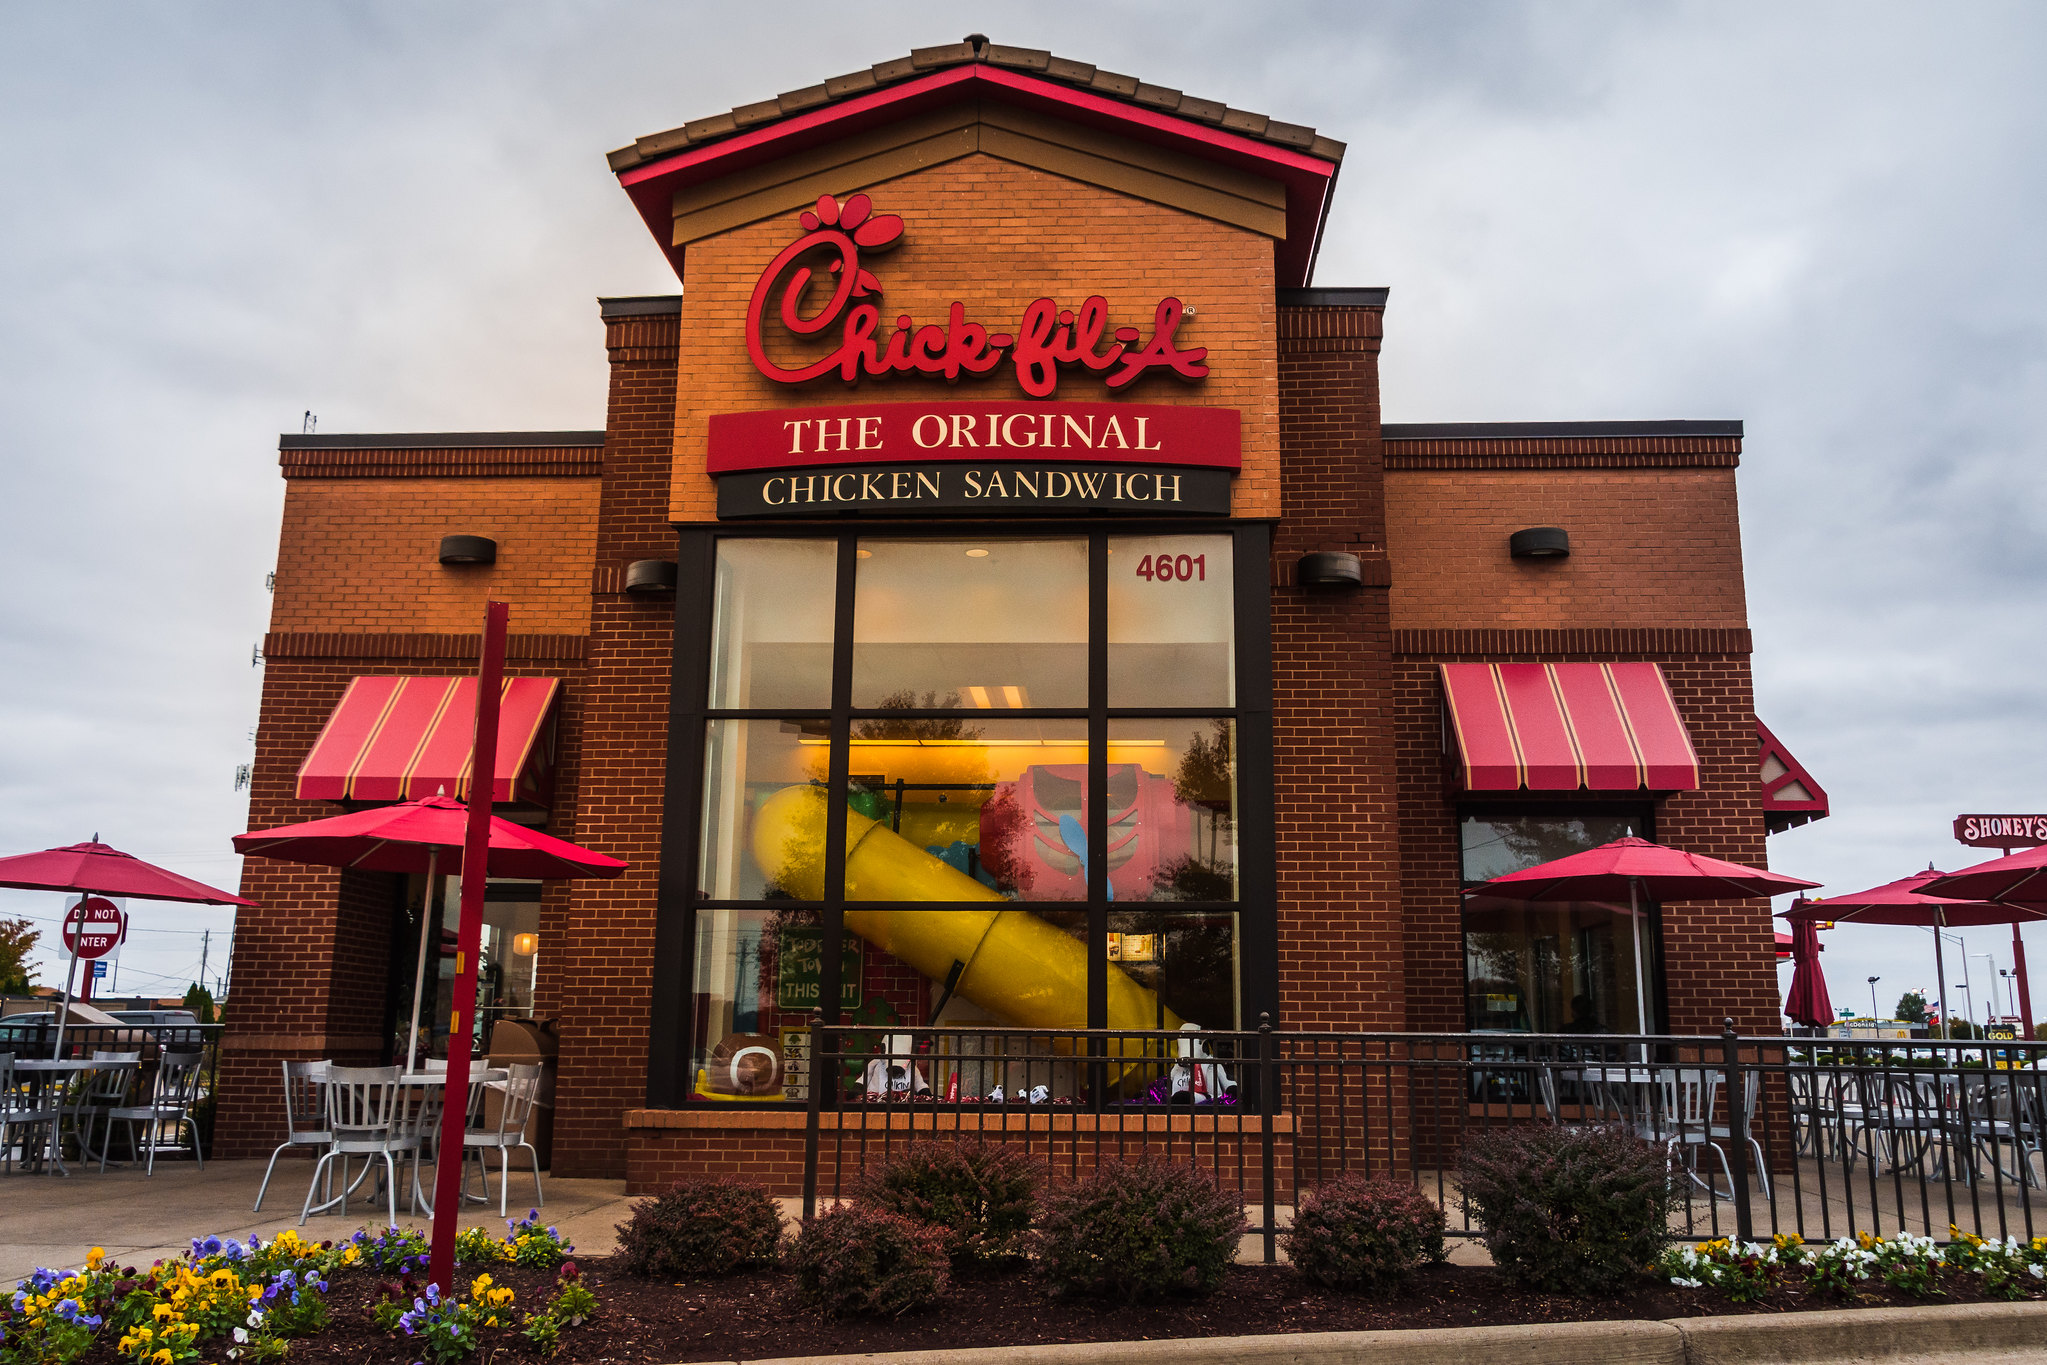 Chick-fil-A outlet exterior